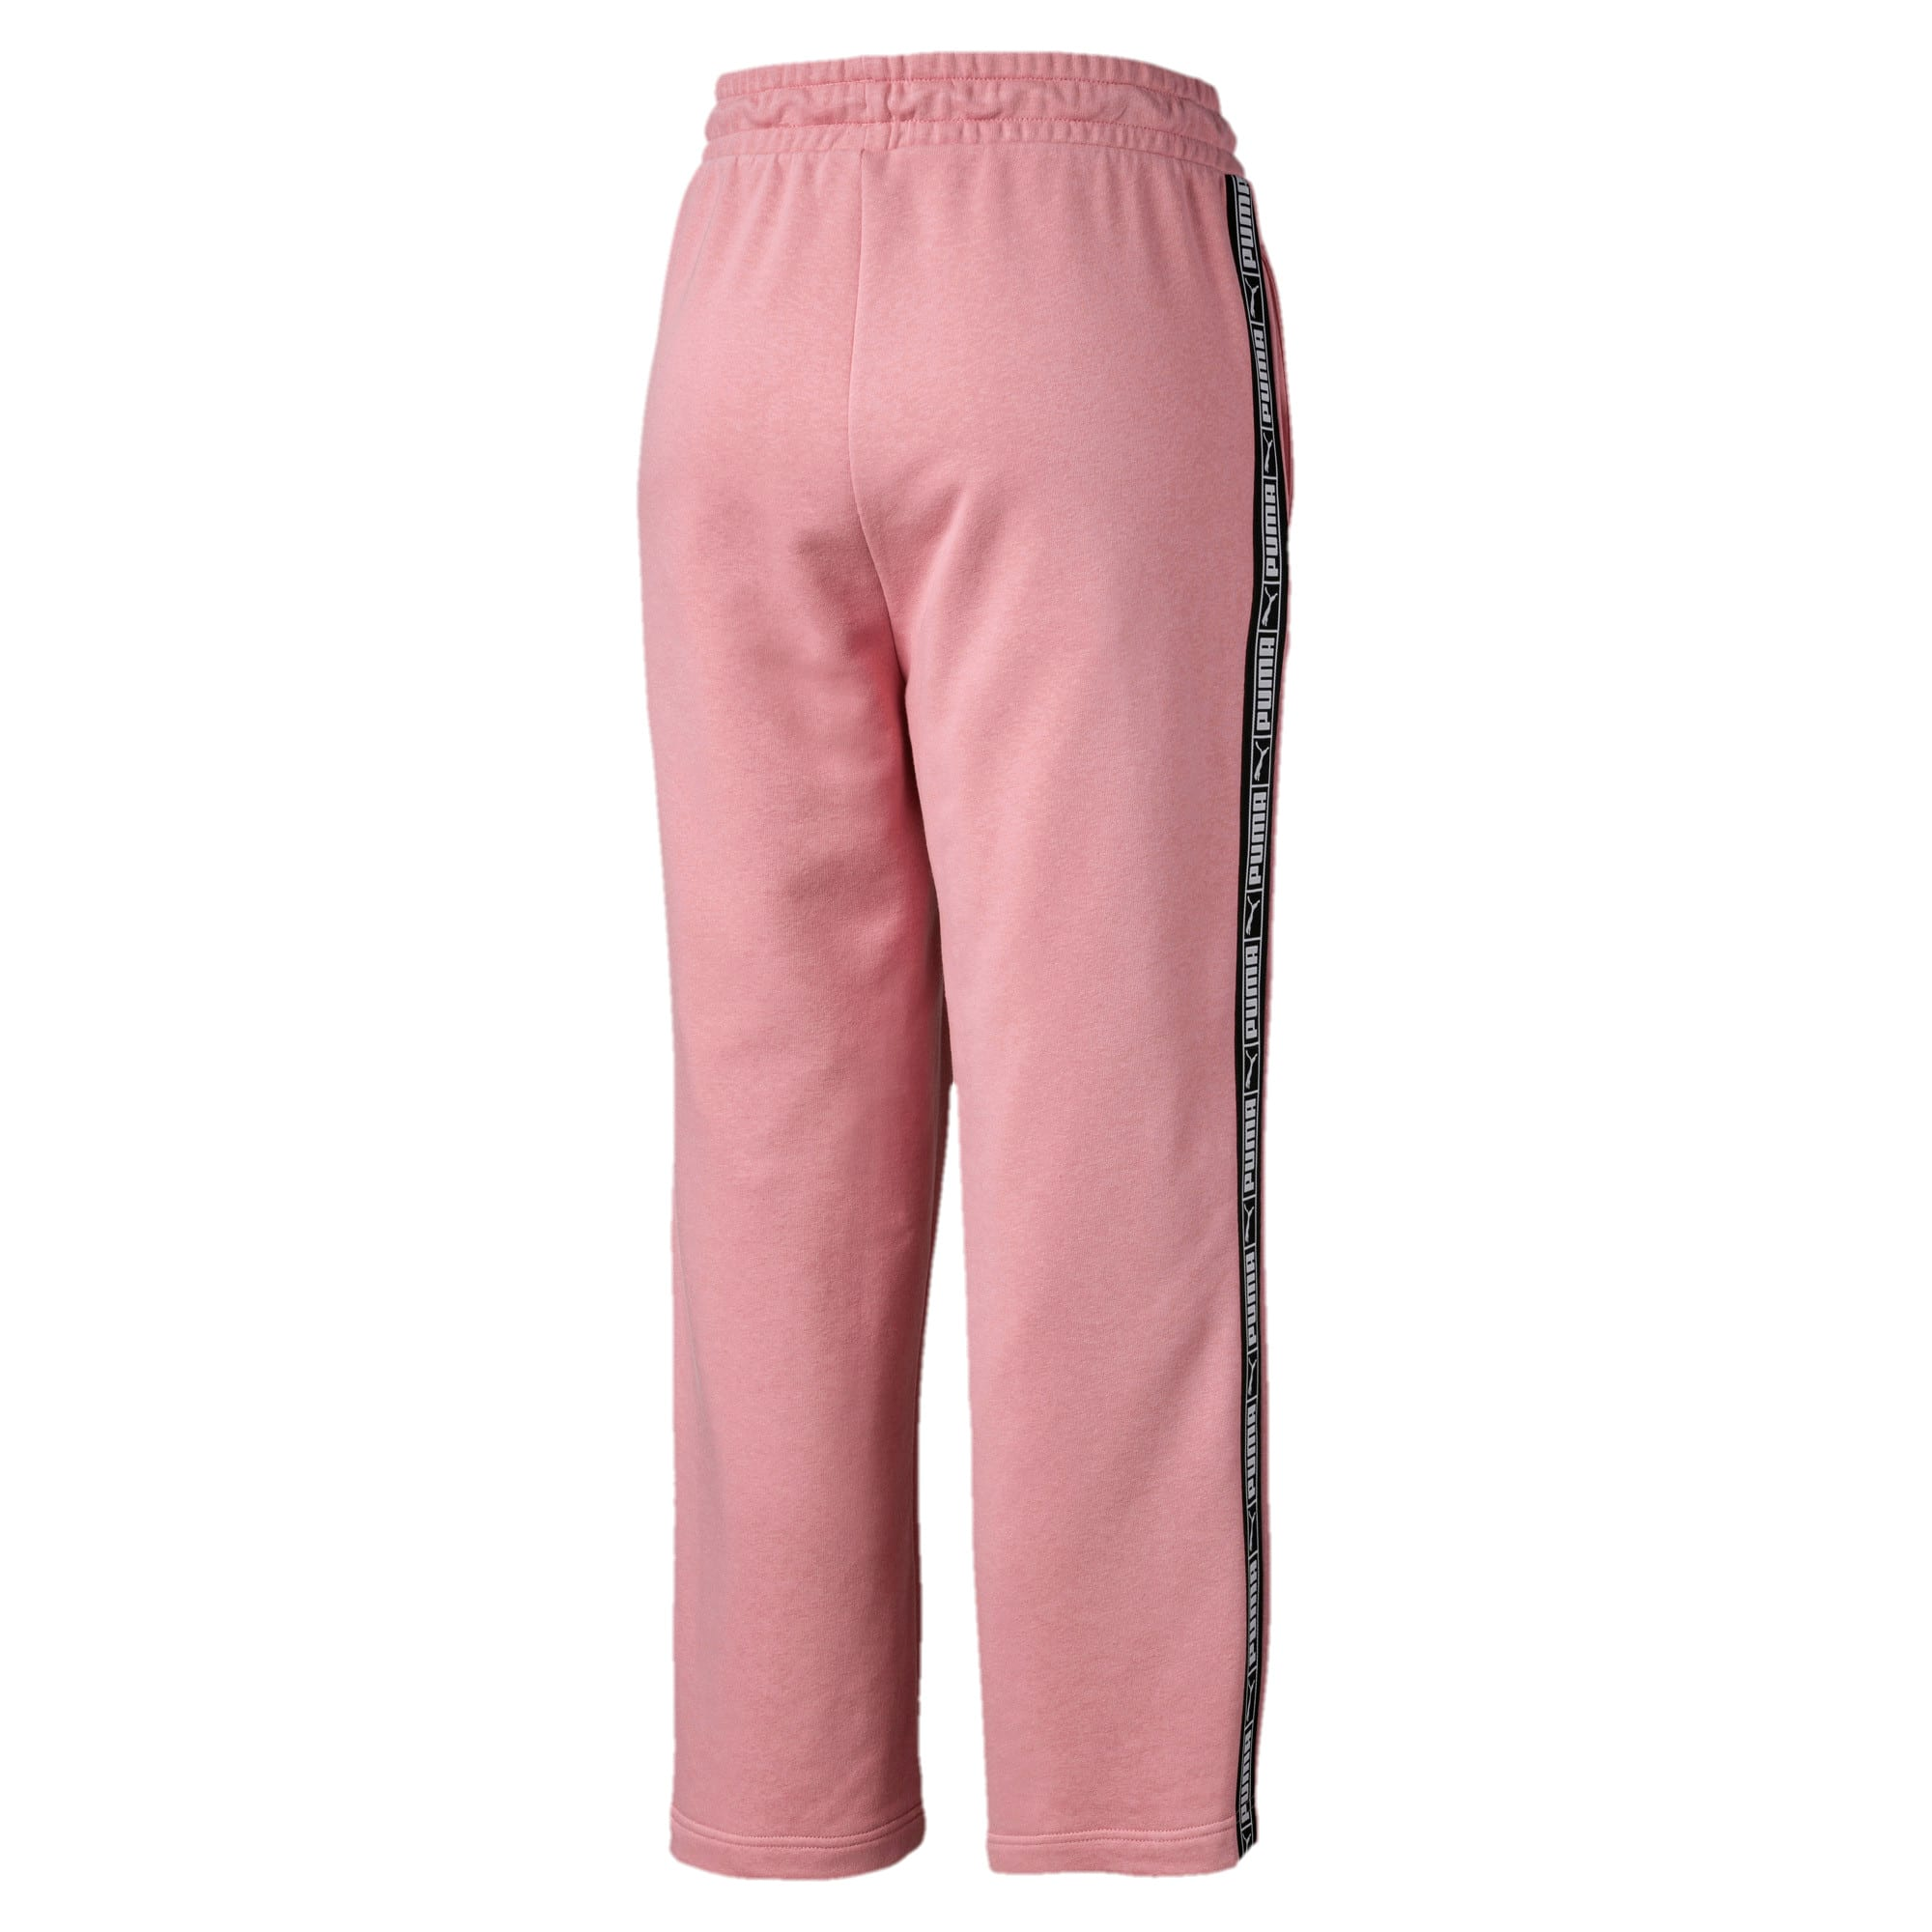 Thumbnail 5 of Classics Women's Track Pants, Bridal Rose, medium